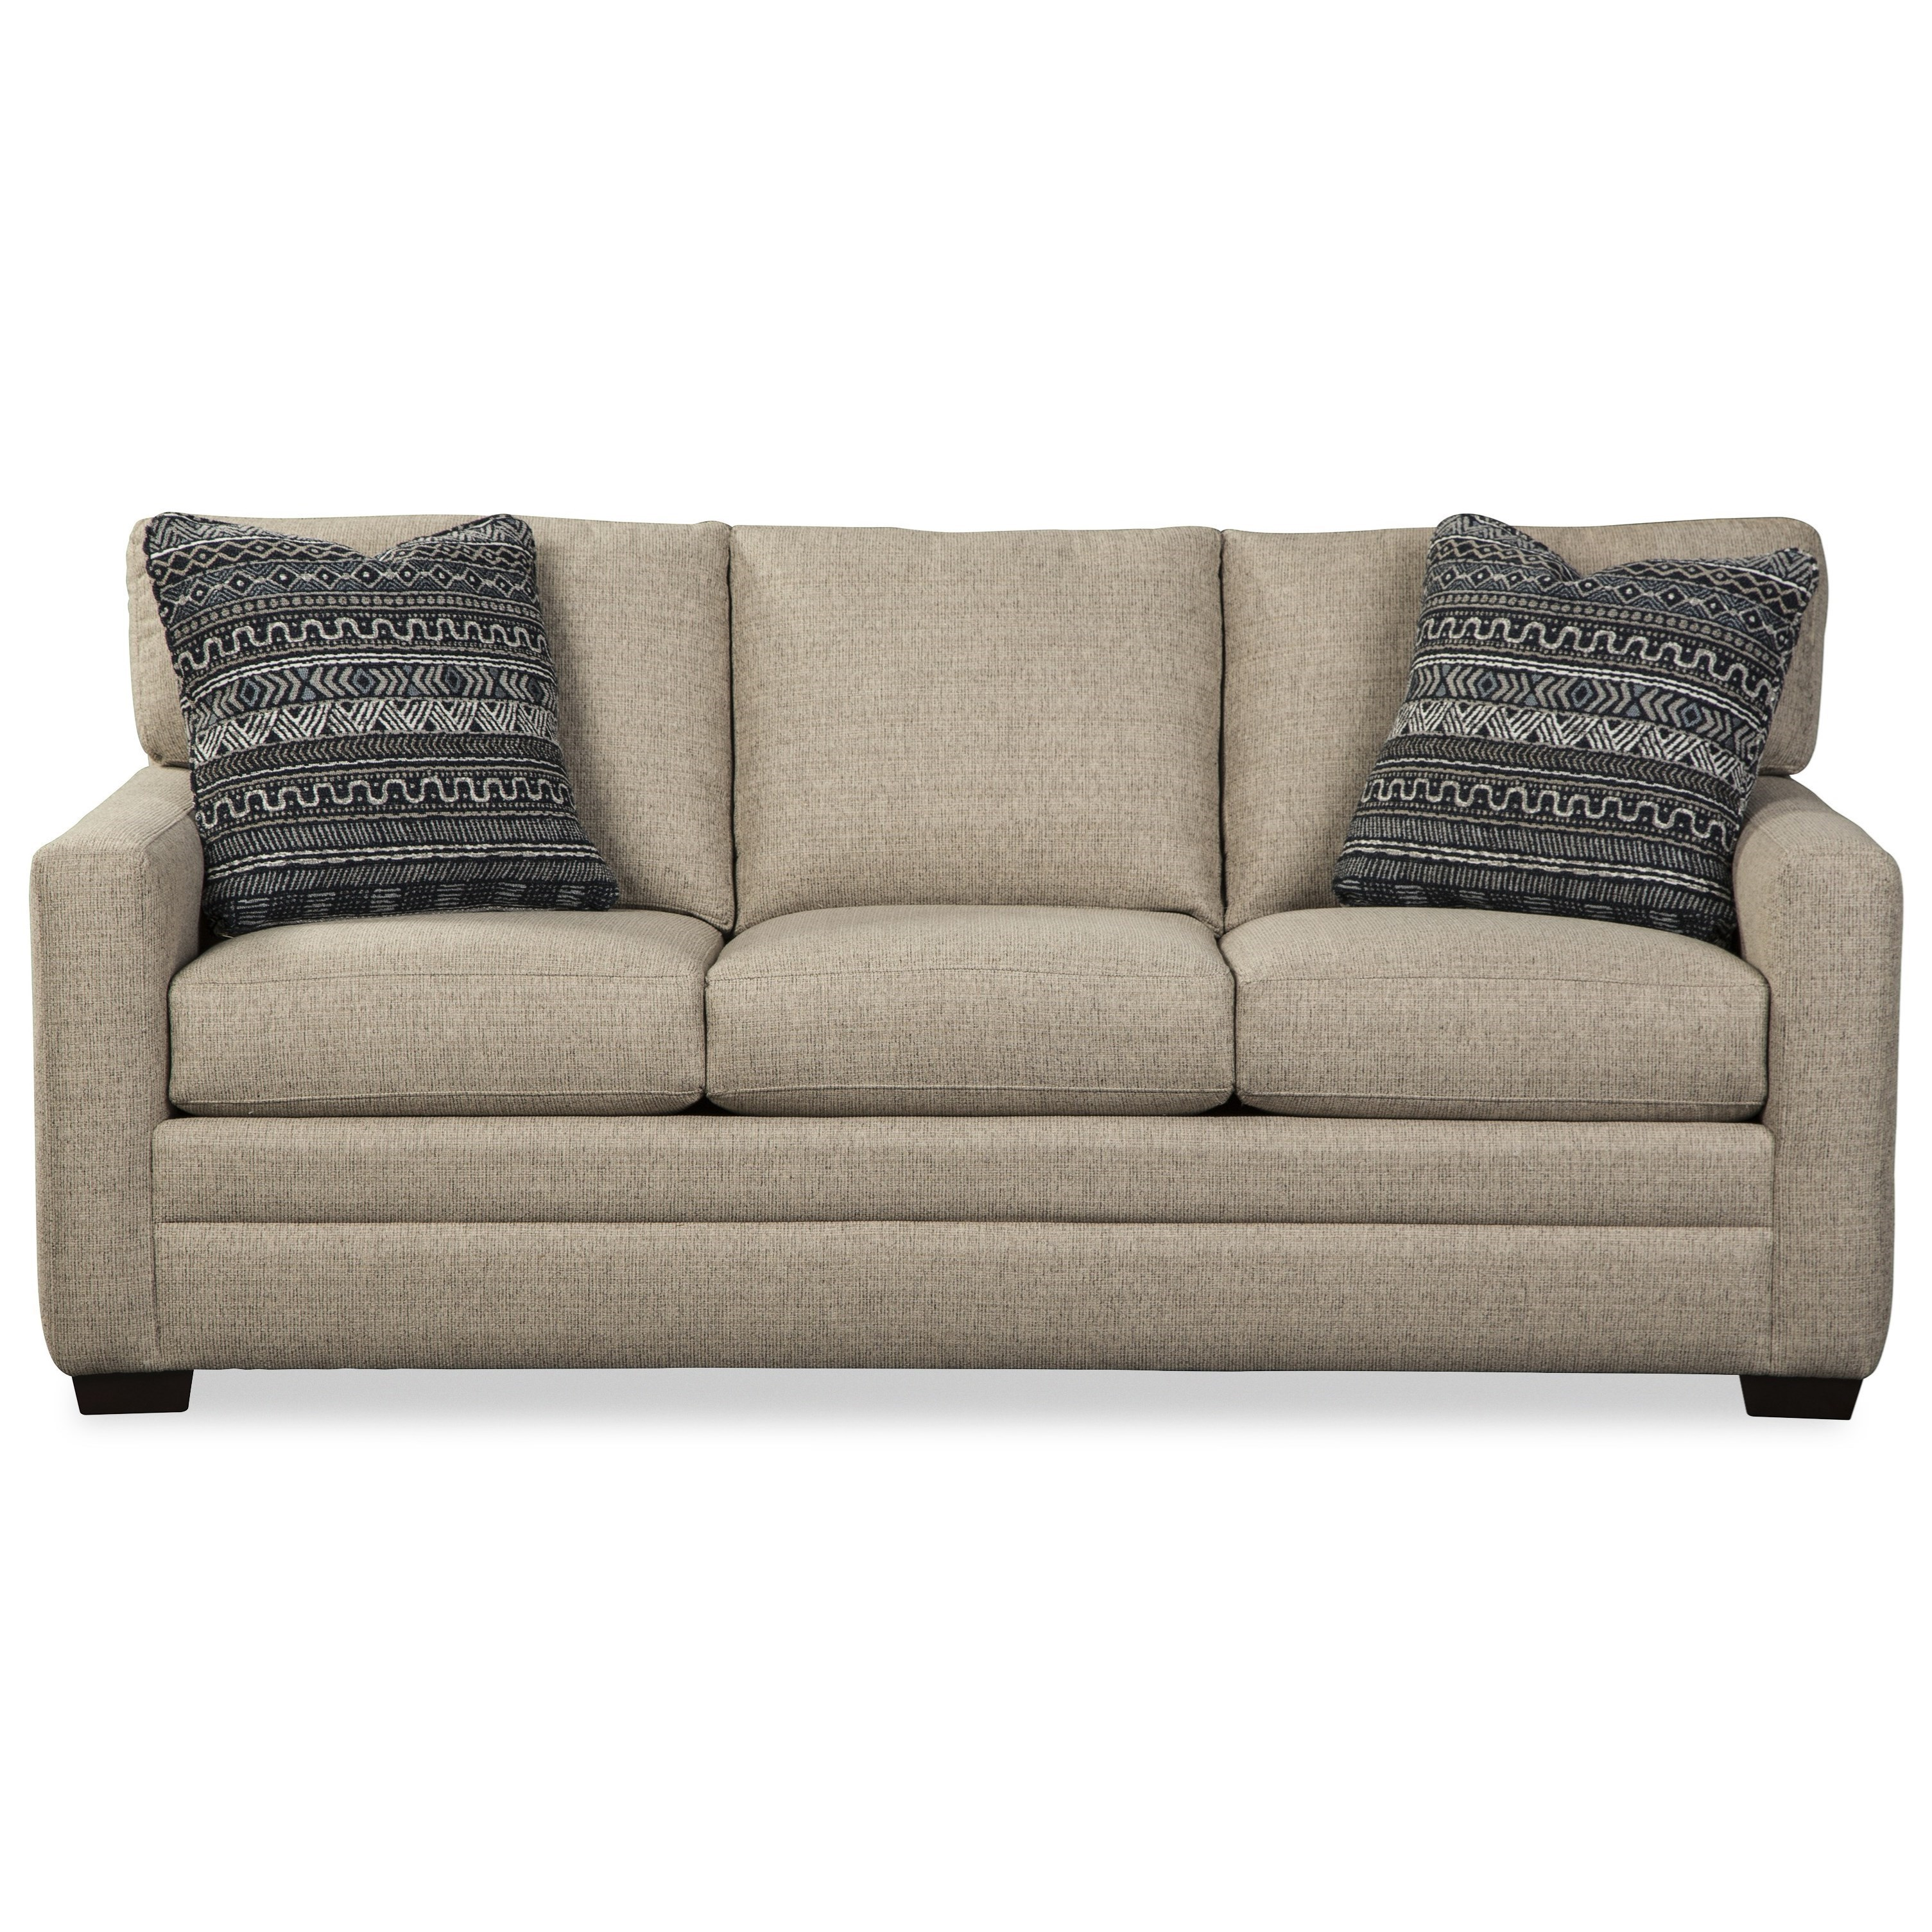 Contemporary Apartment Sofa with Queen Sleeper